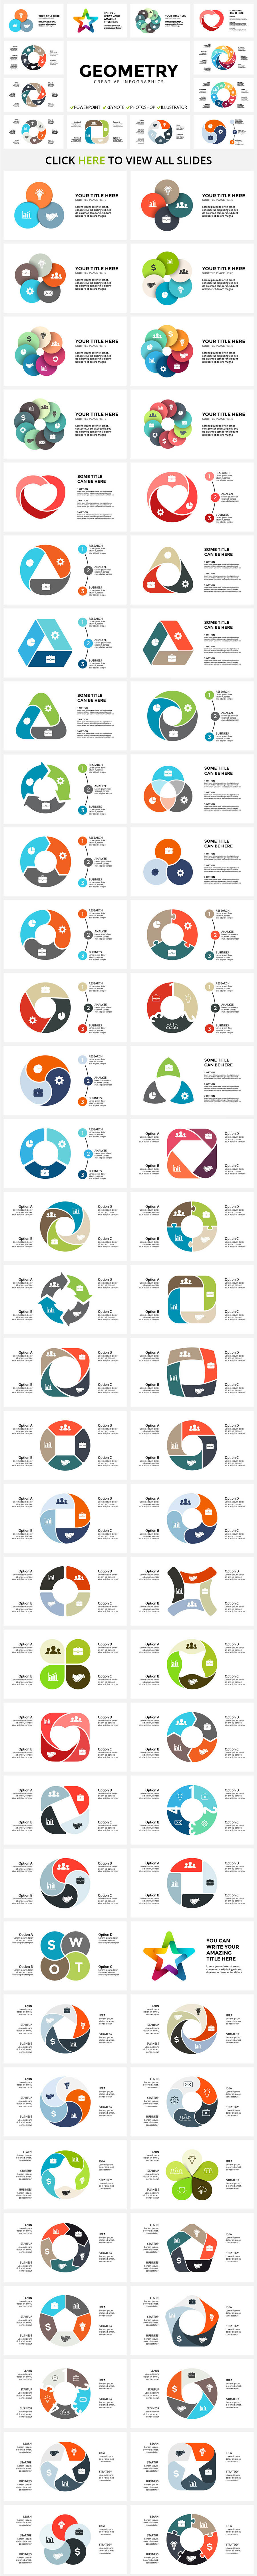 Cool Infographics in 2020. Best Infographics Bundle: 1500 items - $29 - 12 GEOMETRY Part 1